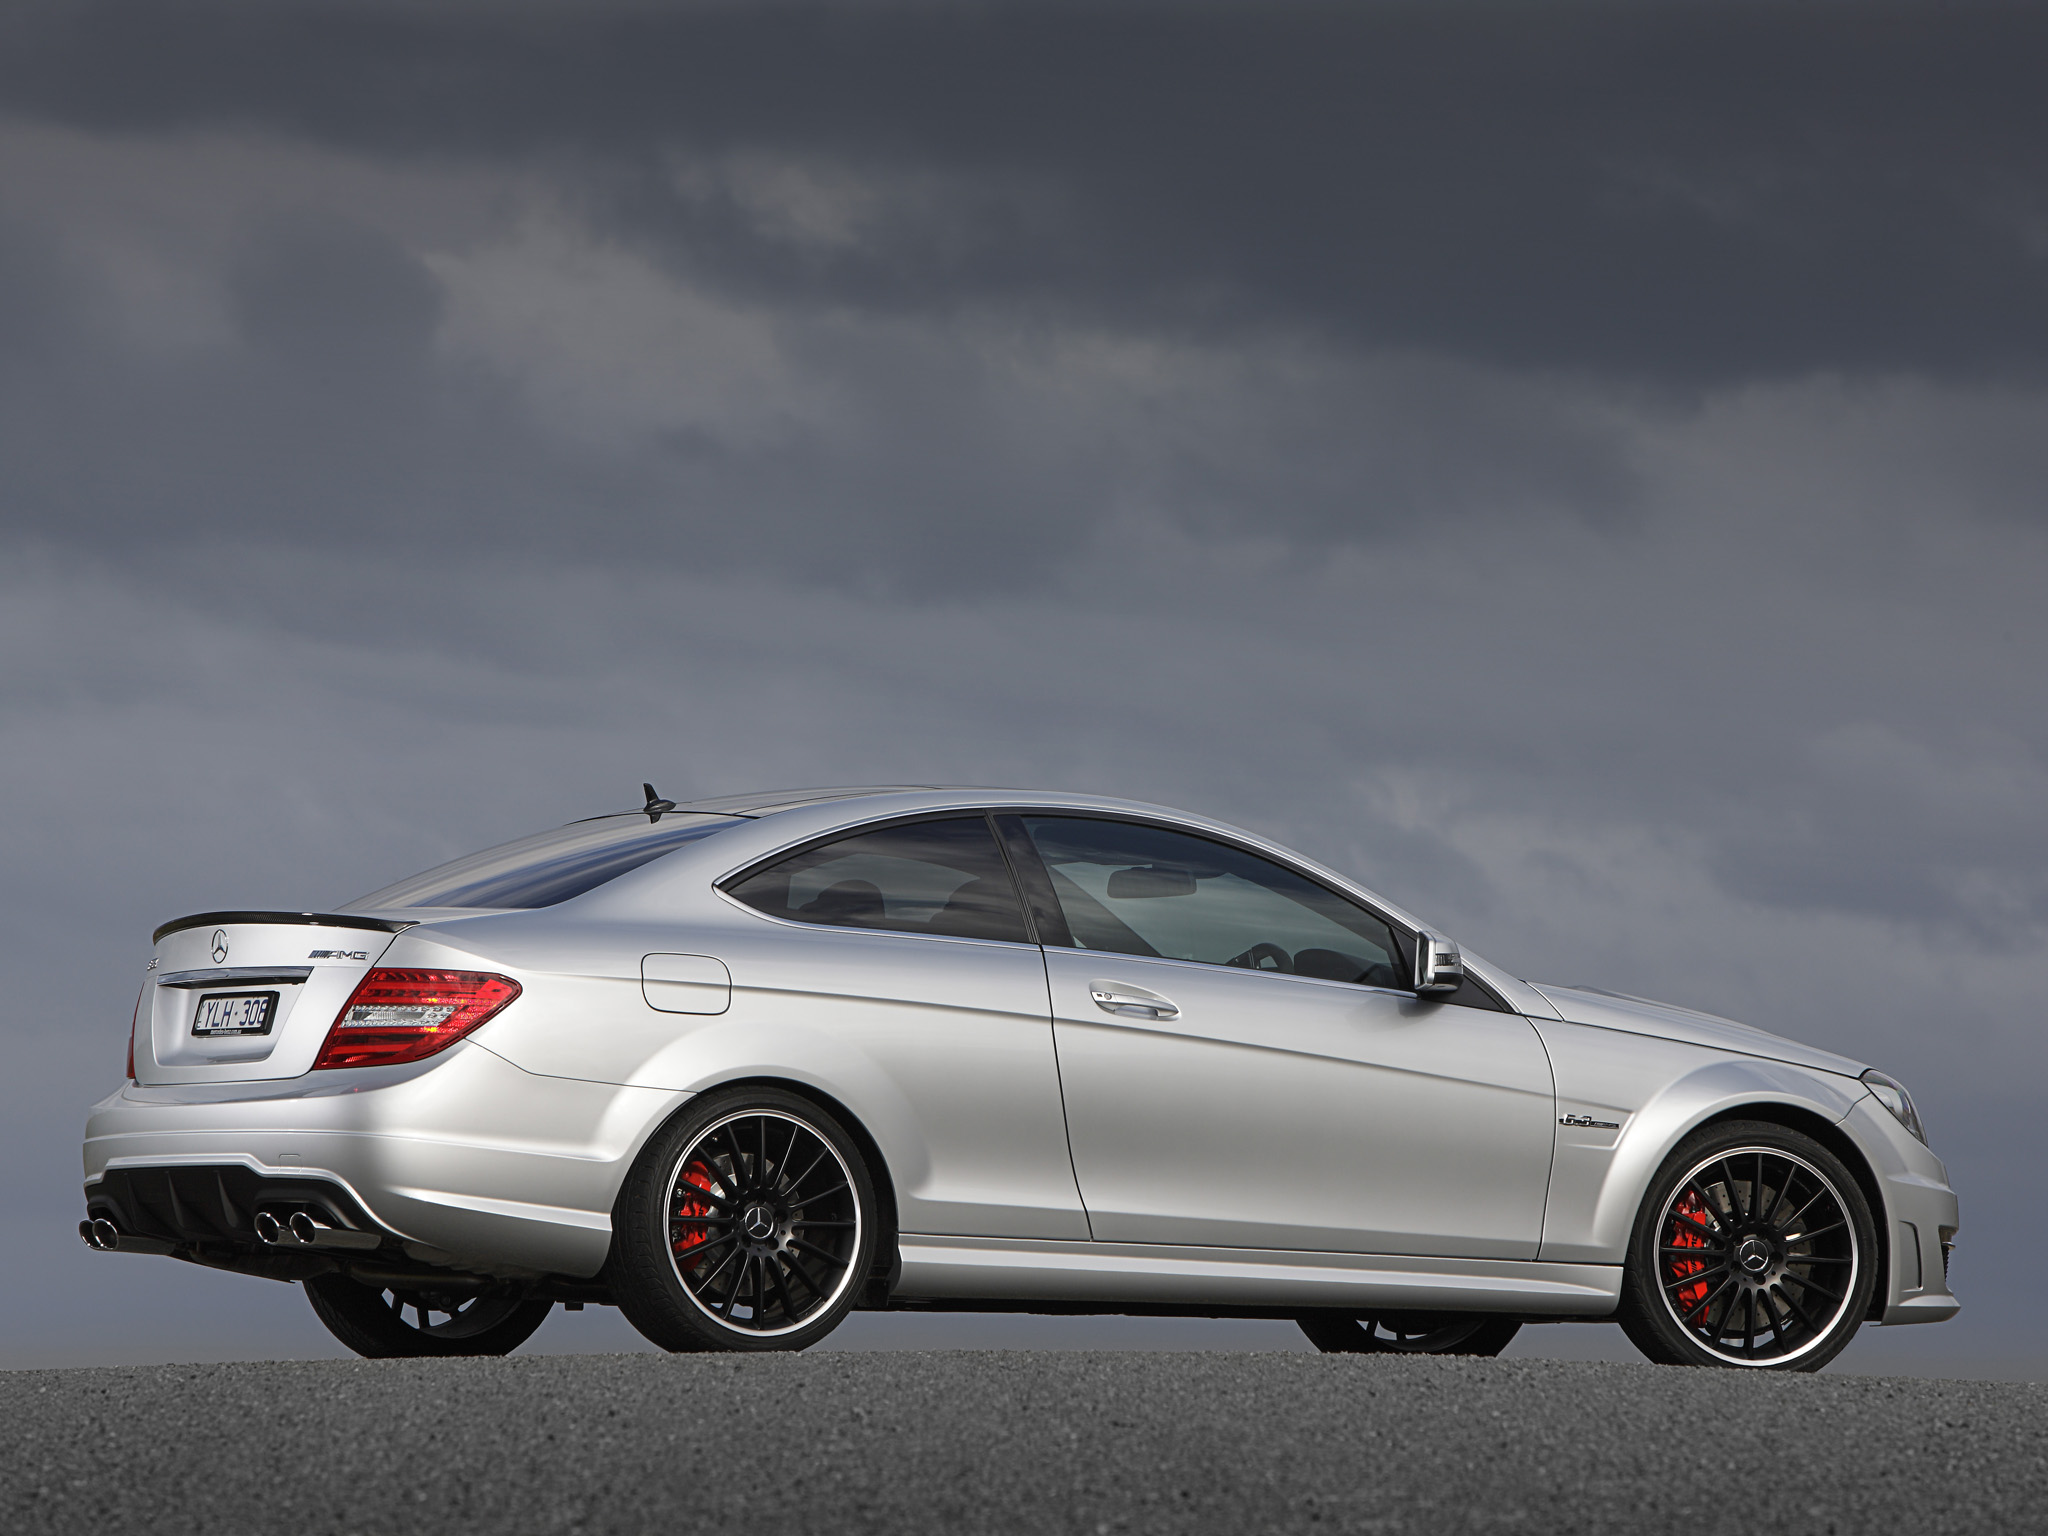 Mercedes-Benz C63 AMG Coupe photo 96459